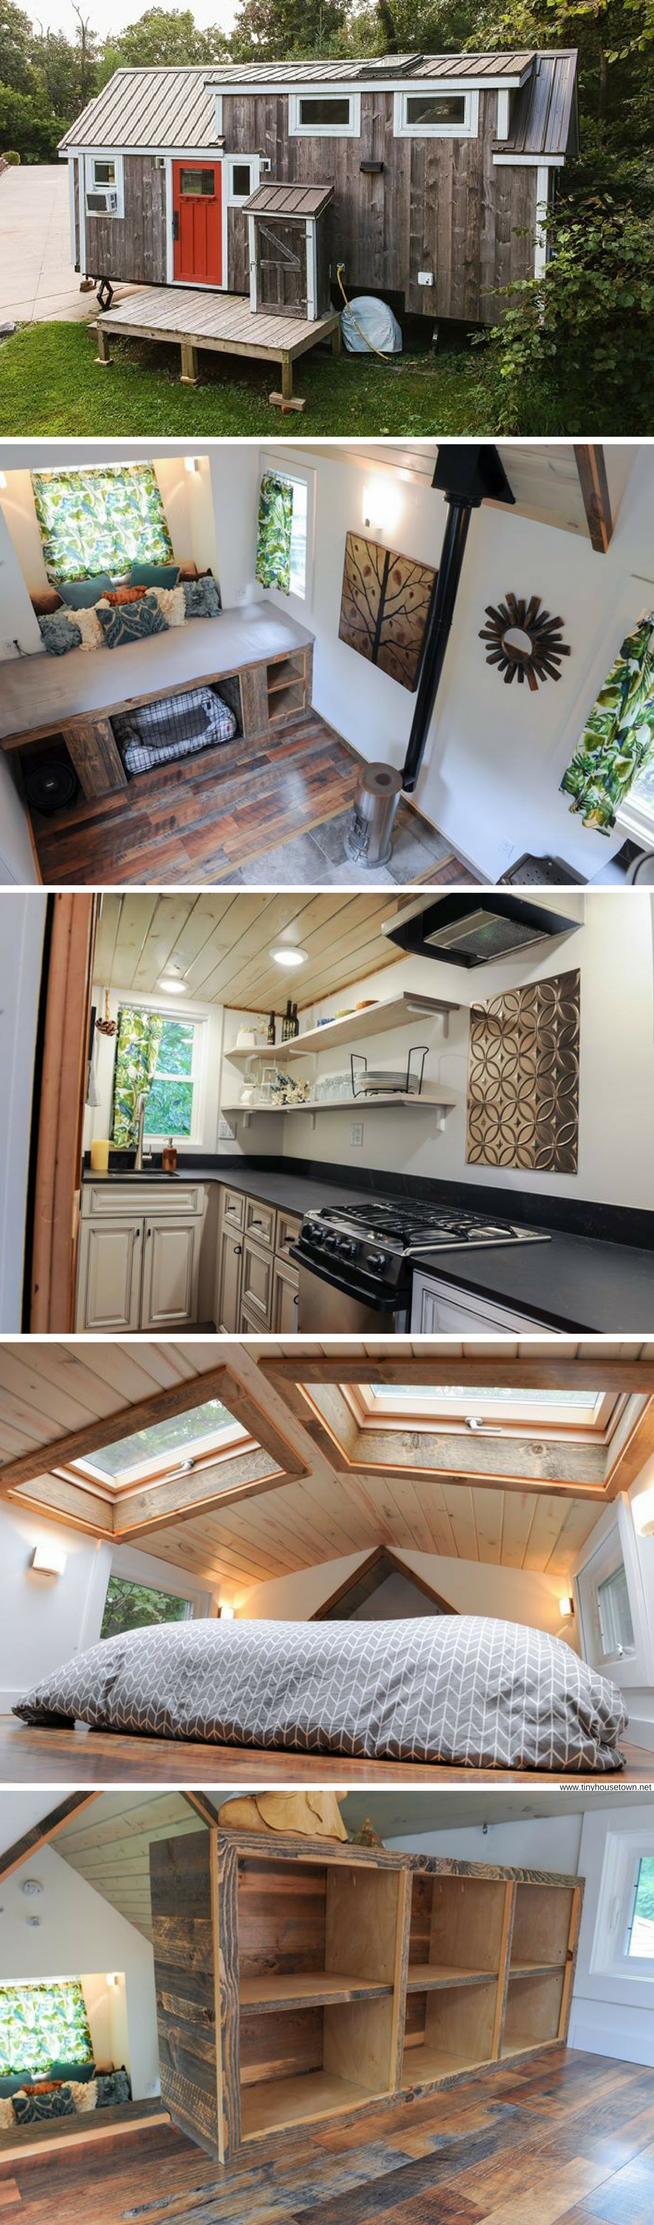 A Modern Rustic Home From Tiny House Nation That S Now